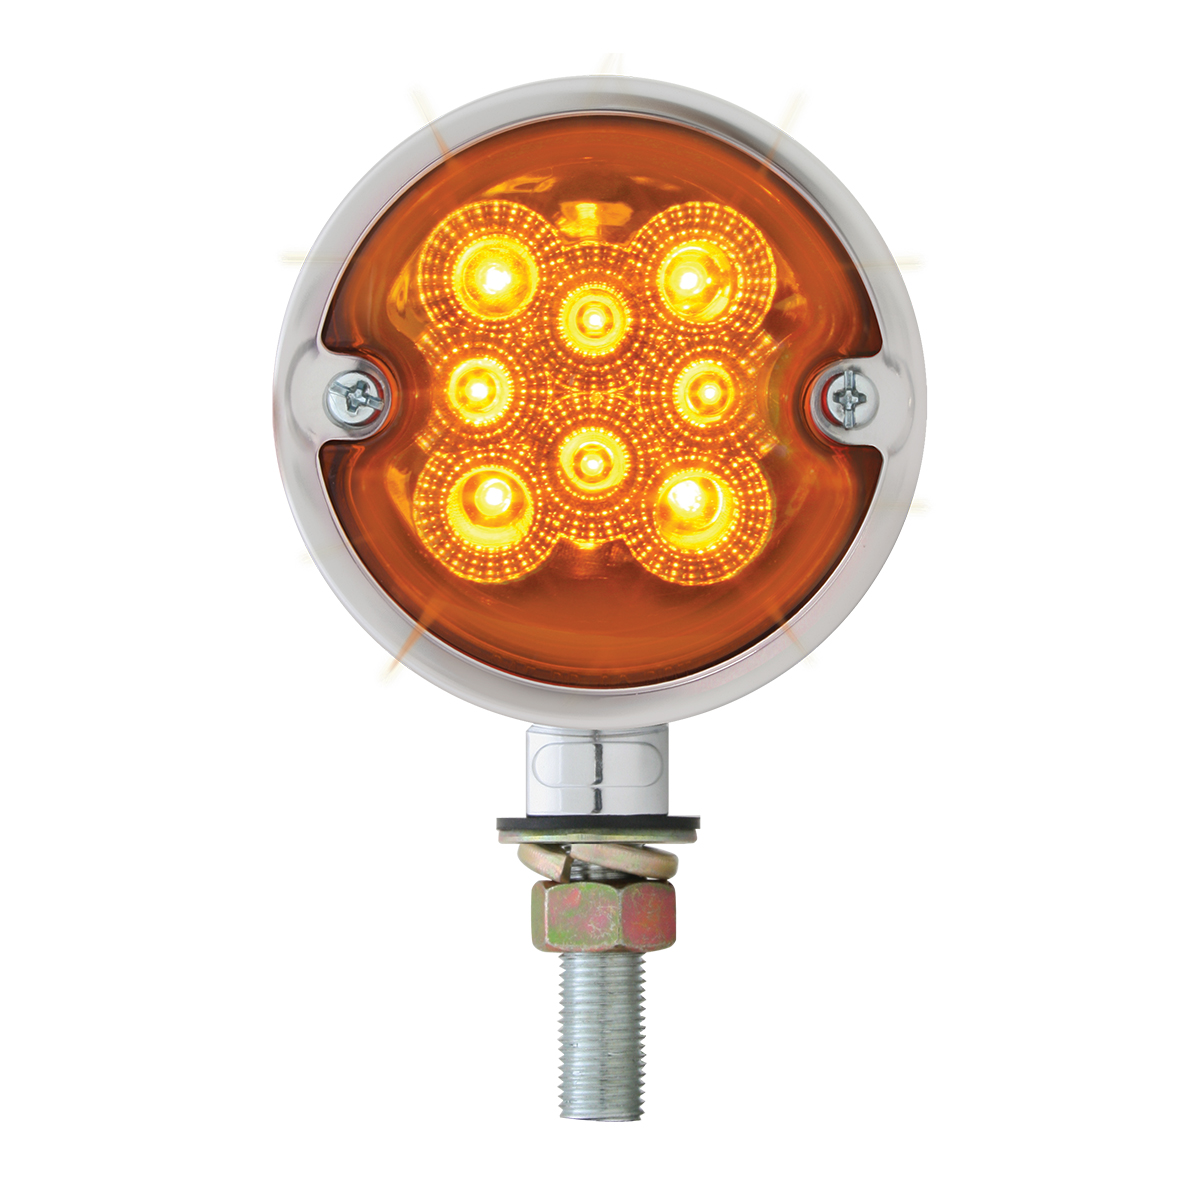 78550 Double Face Spyder LED Light in Amber/Amber